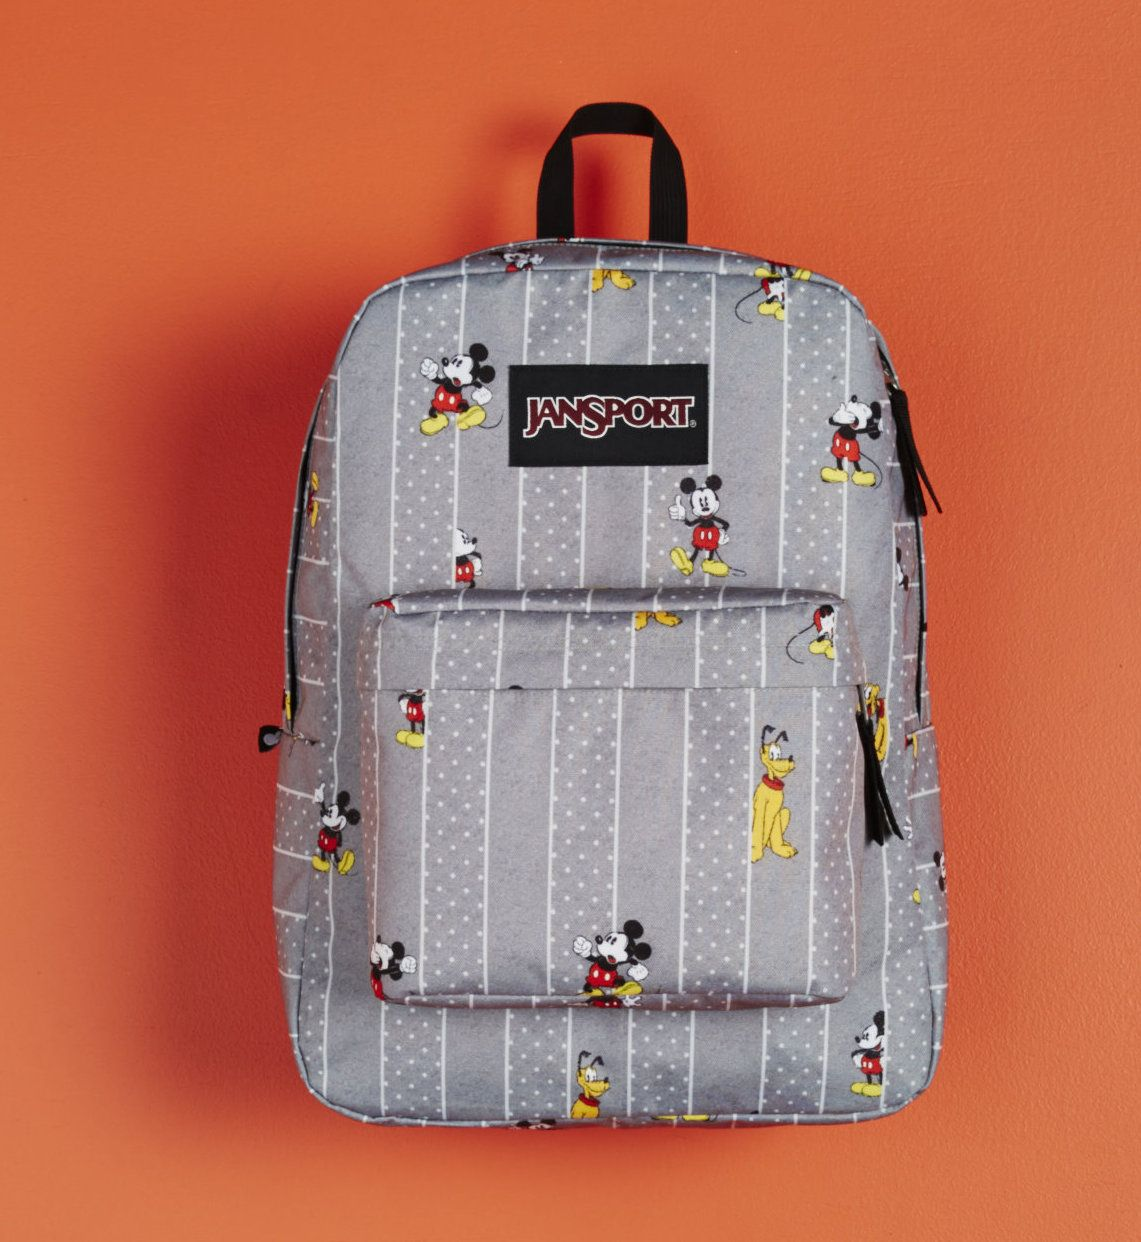 Introducing the First Ever JanSport Disney Backpacks